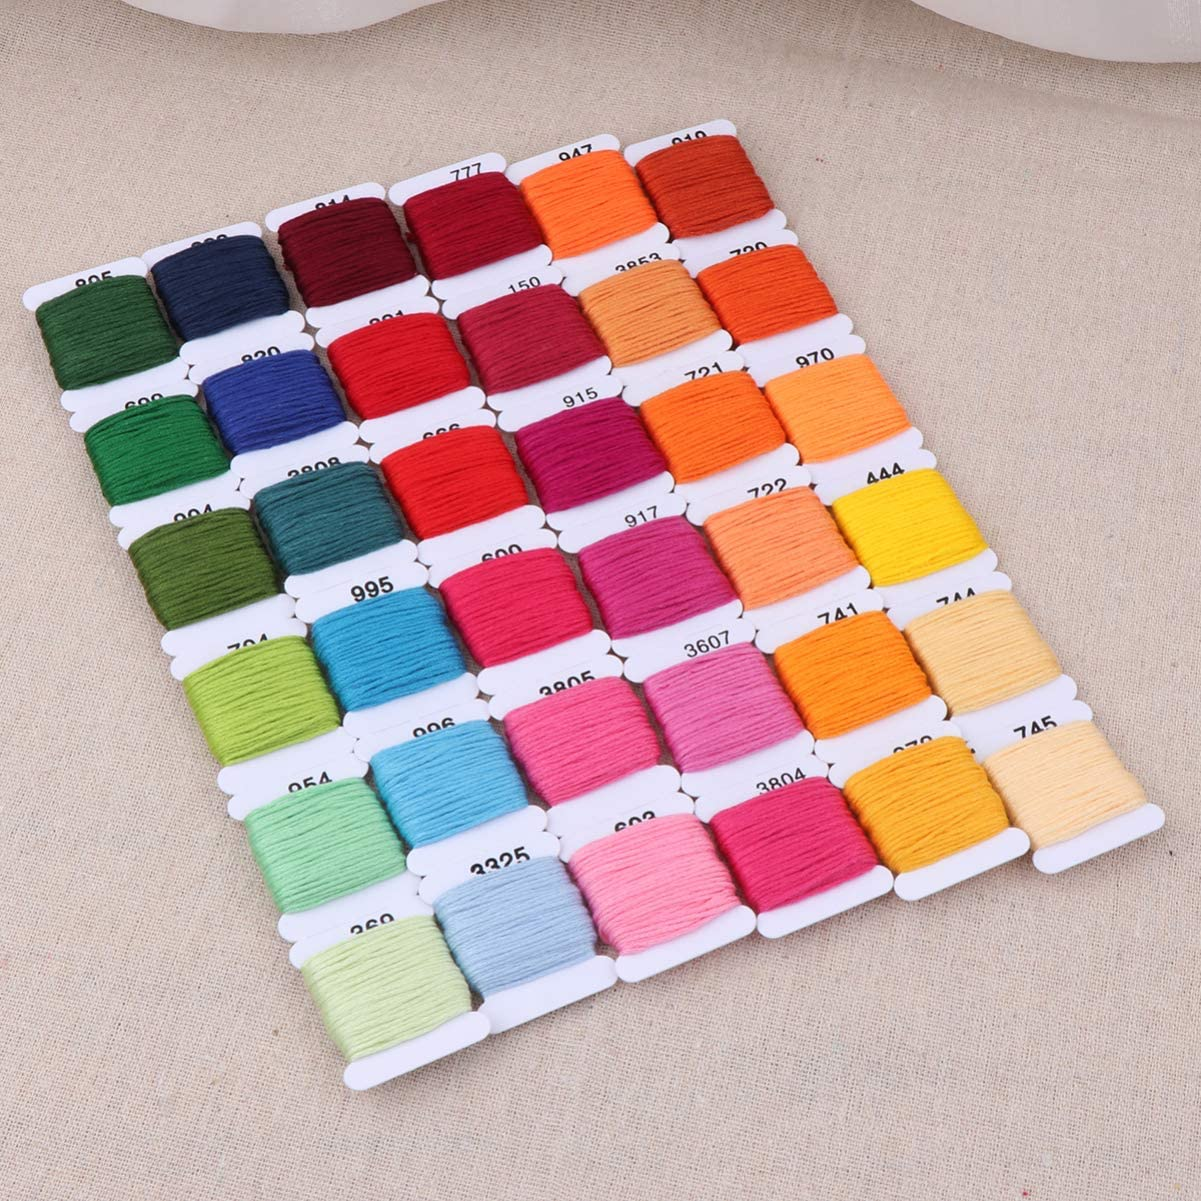 Exceart 72 Colors Embroidery Thread Friendship Bracelet String 72 Pcs Embroidery Floss Weaving Threads for Home Shop